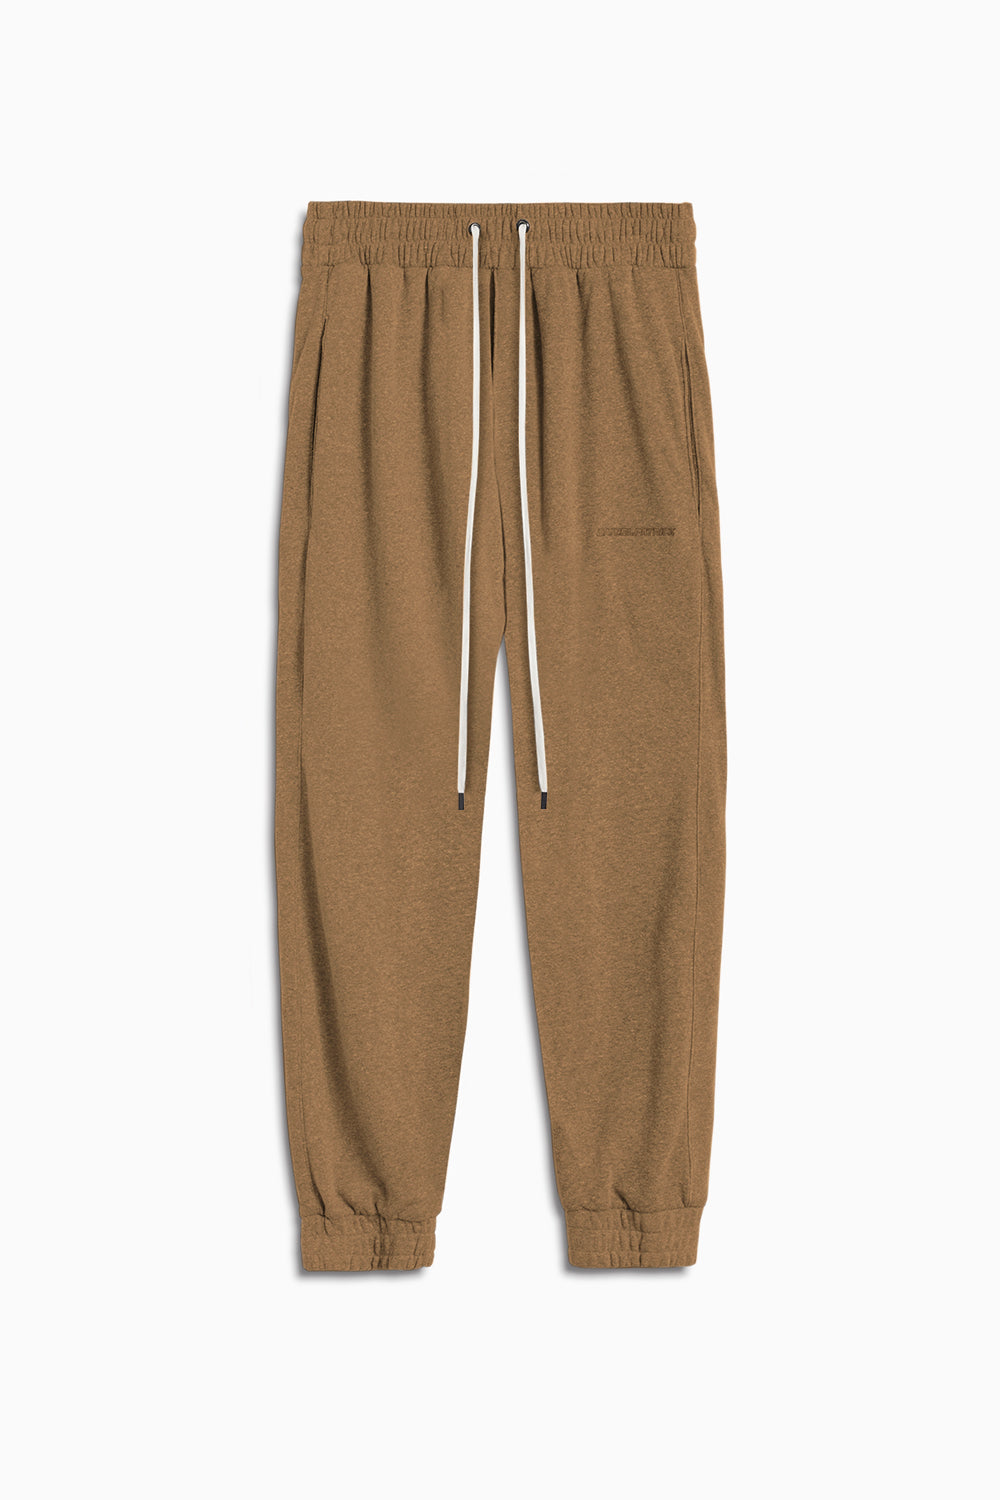 loop terry roaming sweatpants / mojave